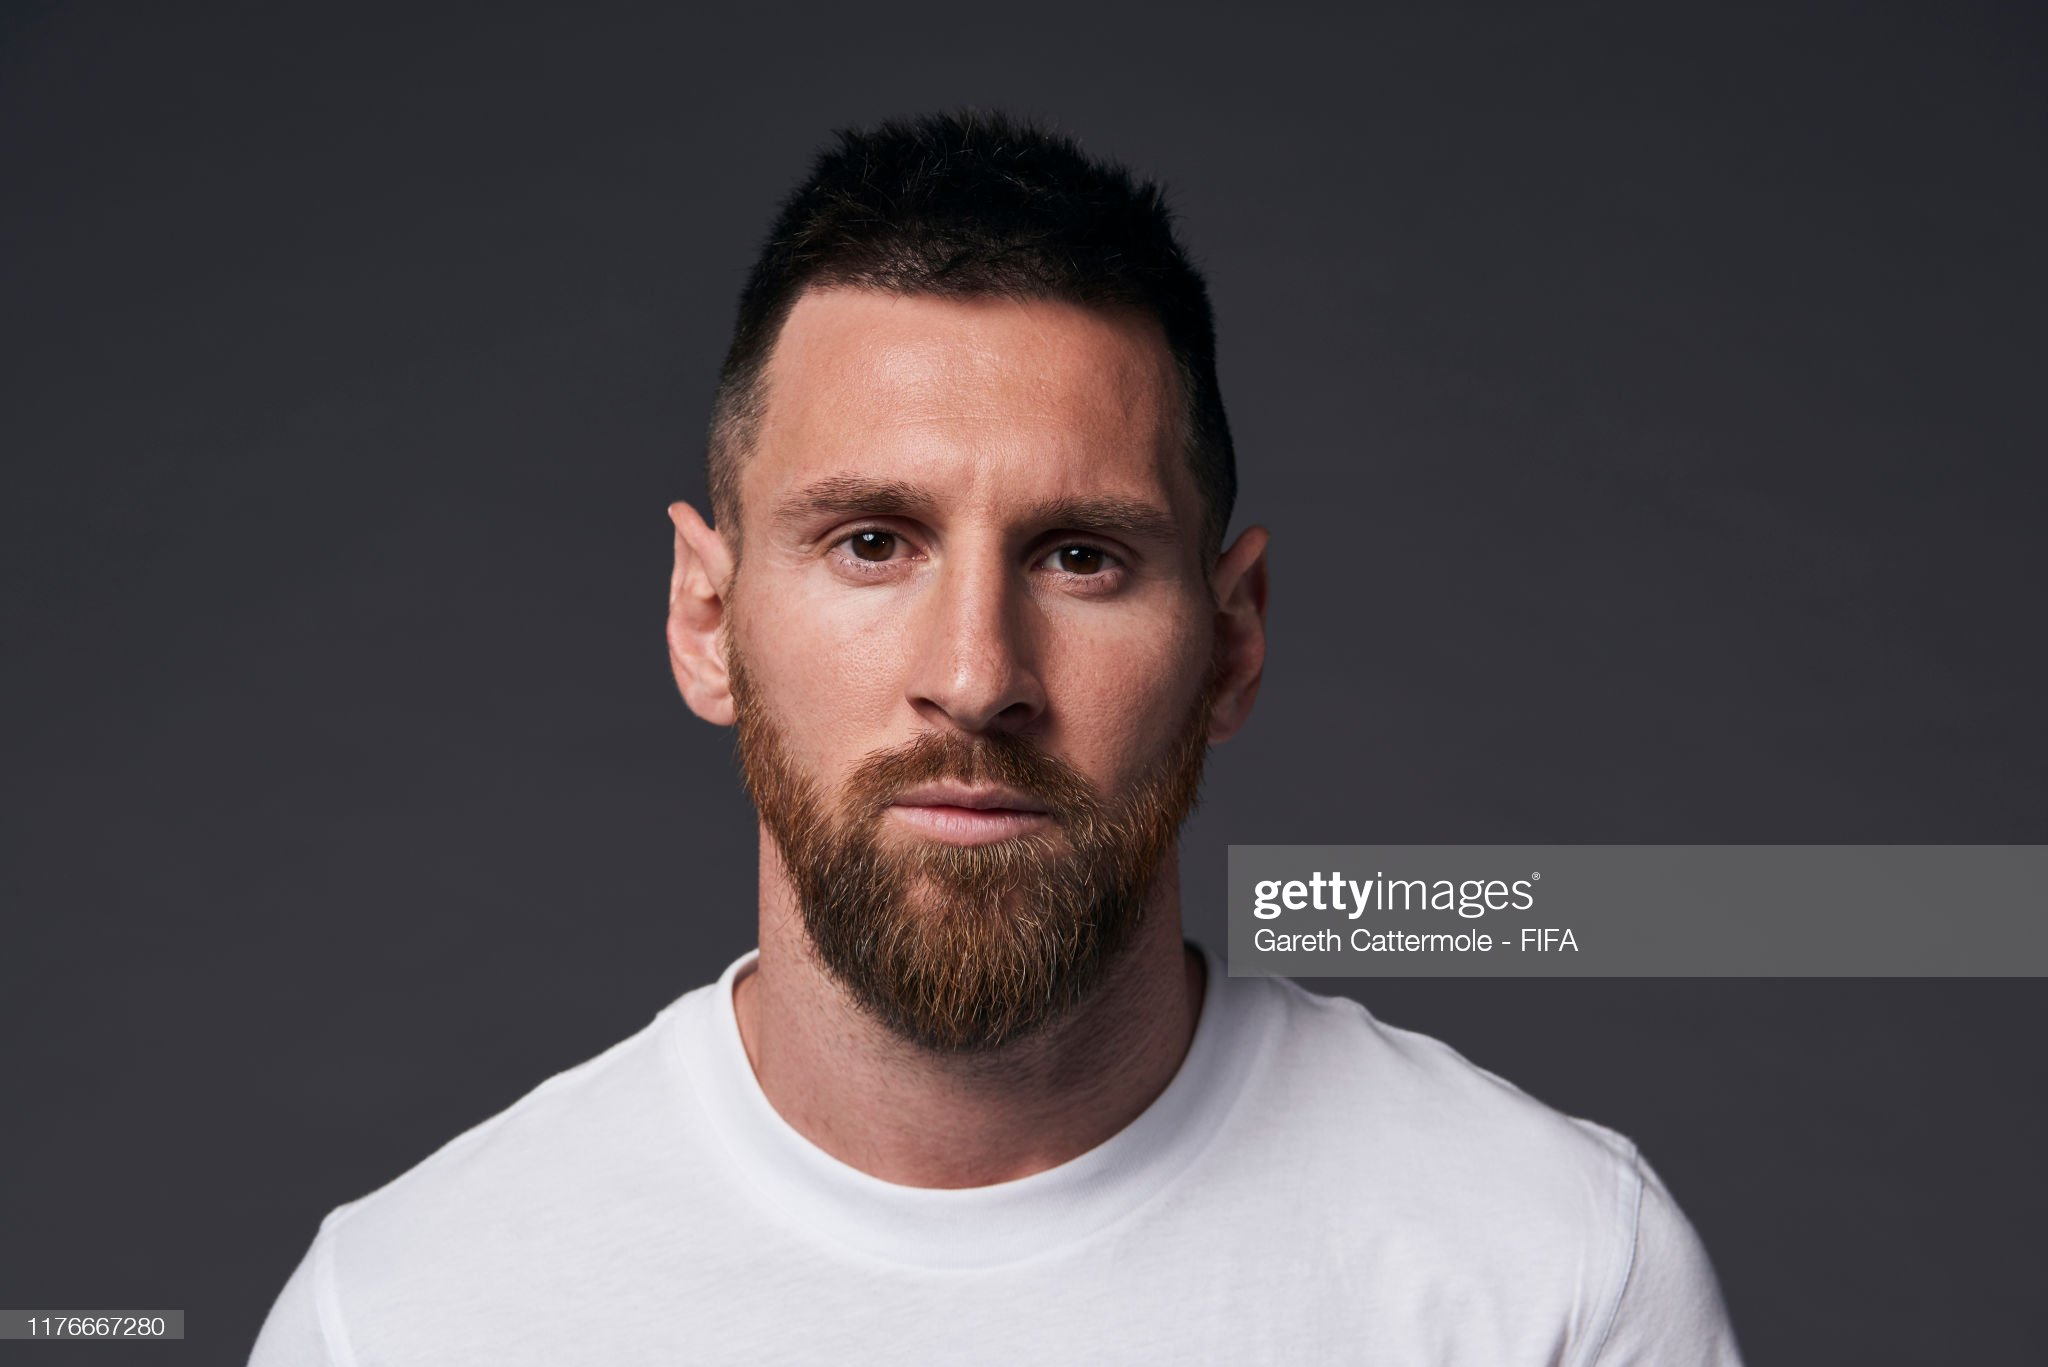 The Best FIFA Football Awards 2019 The-best-fifa-mens-player-award-finalist-lionel-messi-of-barcelona-picture-id1176667280?s=2048x2048